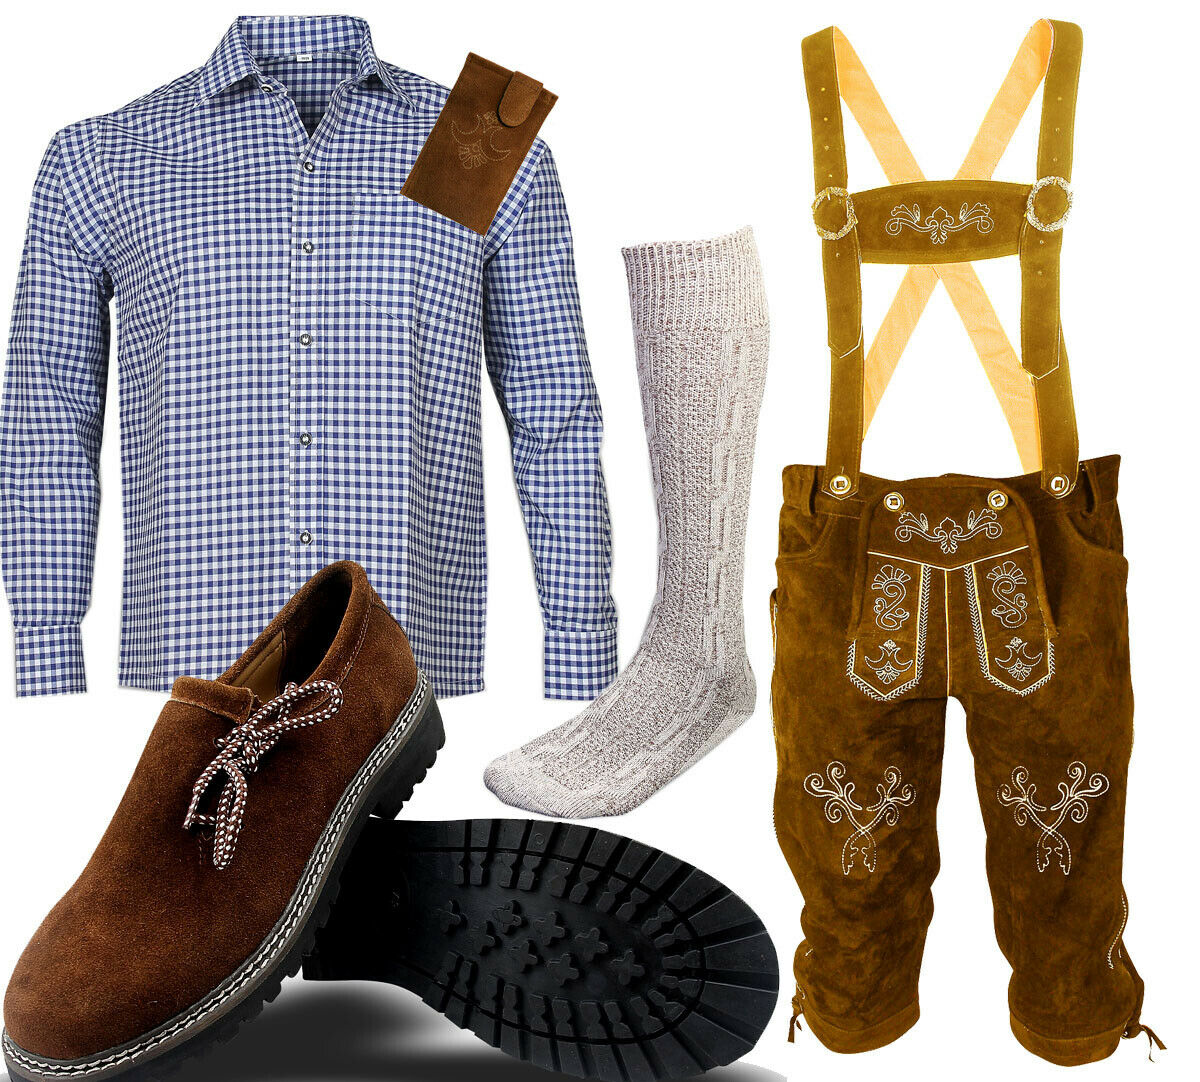 Traditional Costume Set Men's Leather Trousers 6tlg Shirt Shoes Socks BHBH02